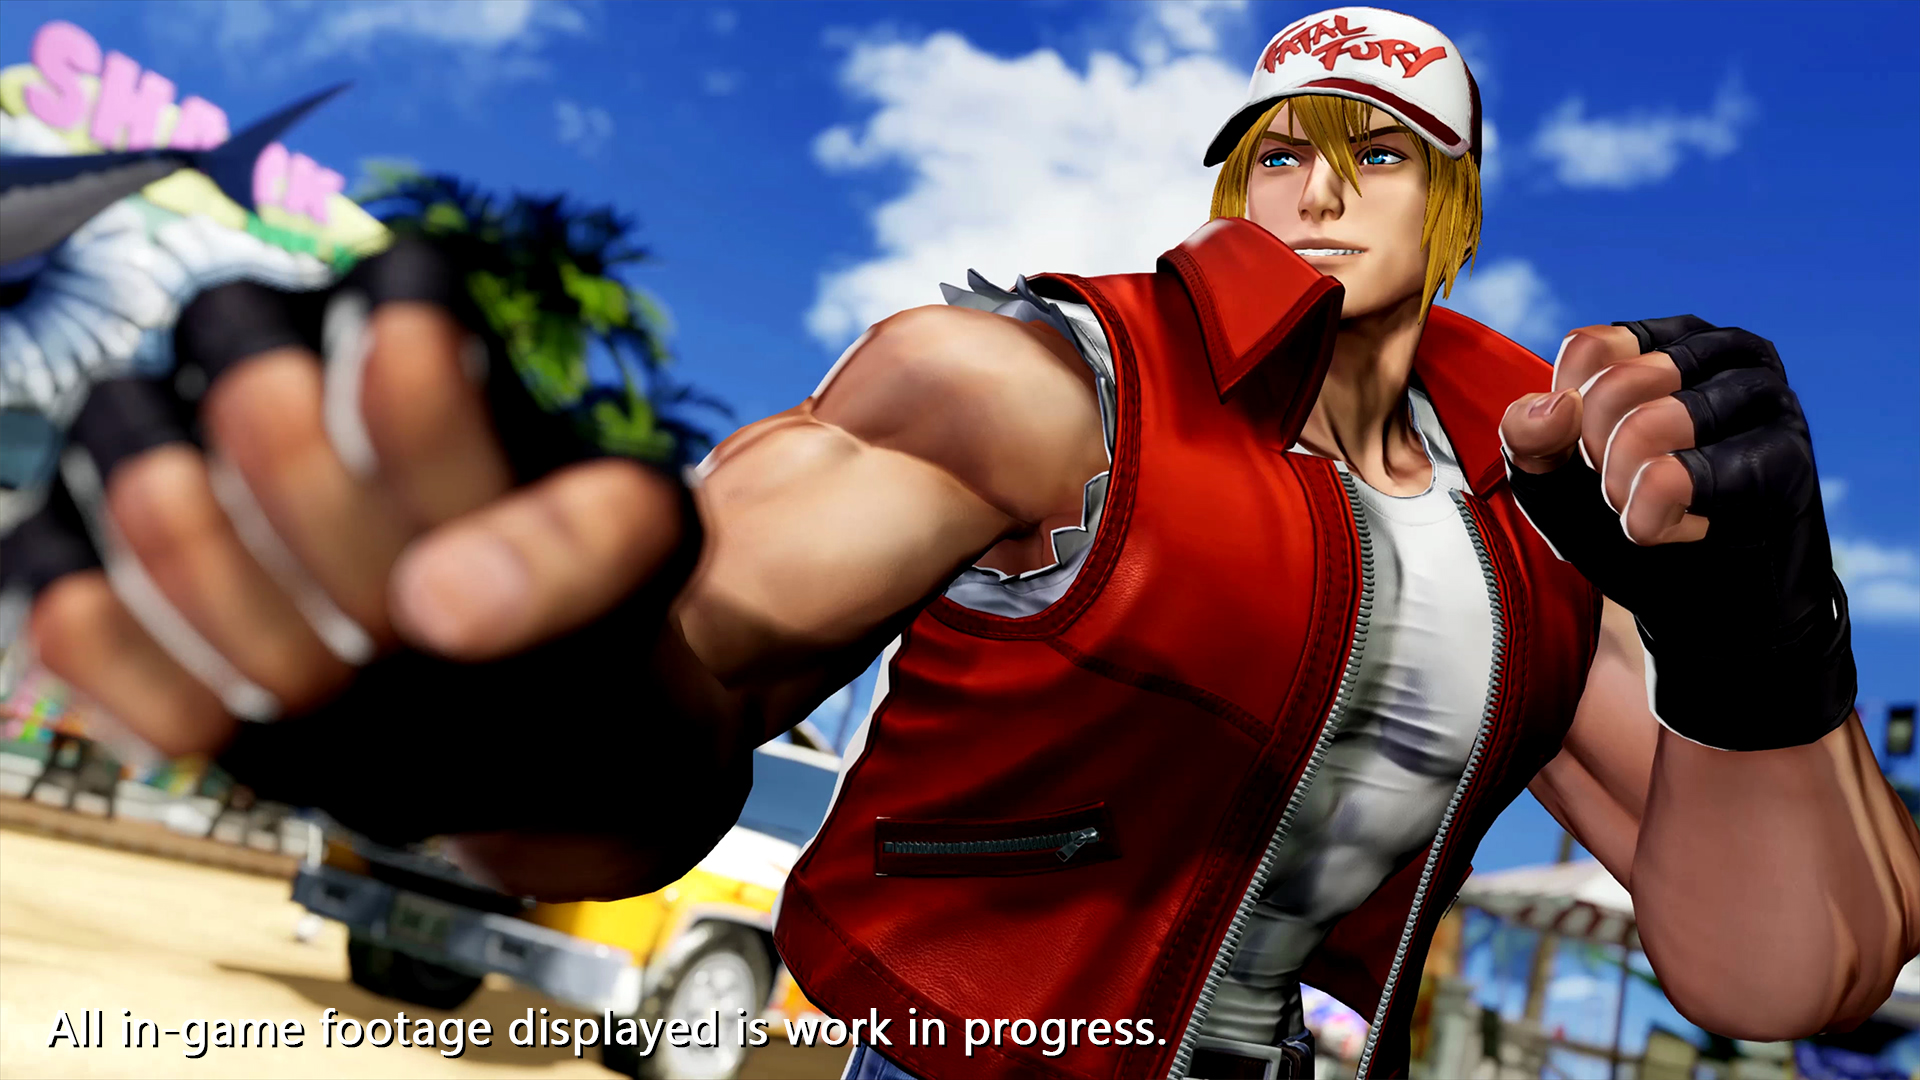 Terry Bogard reveal 3 out of 6 image gallery